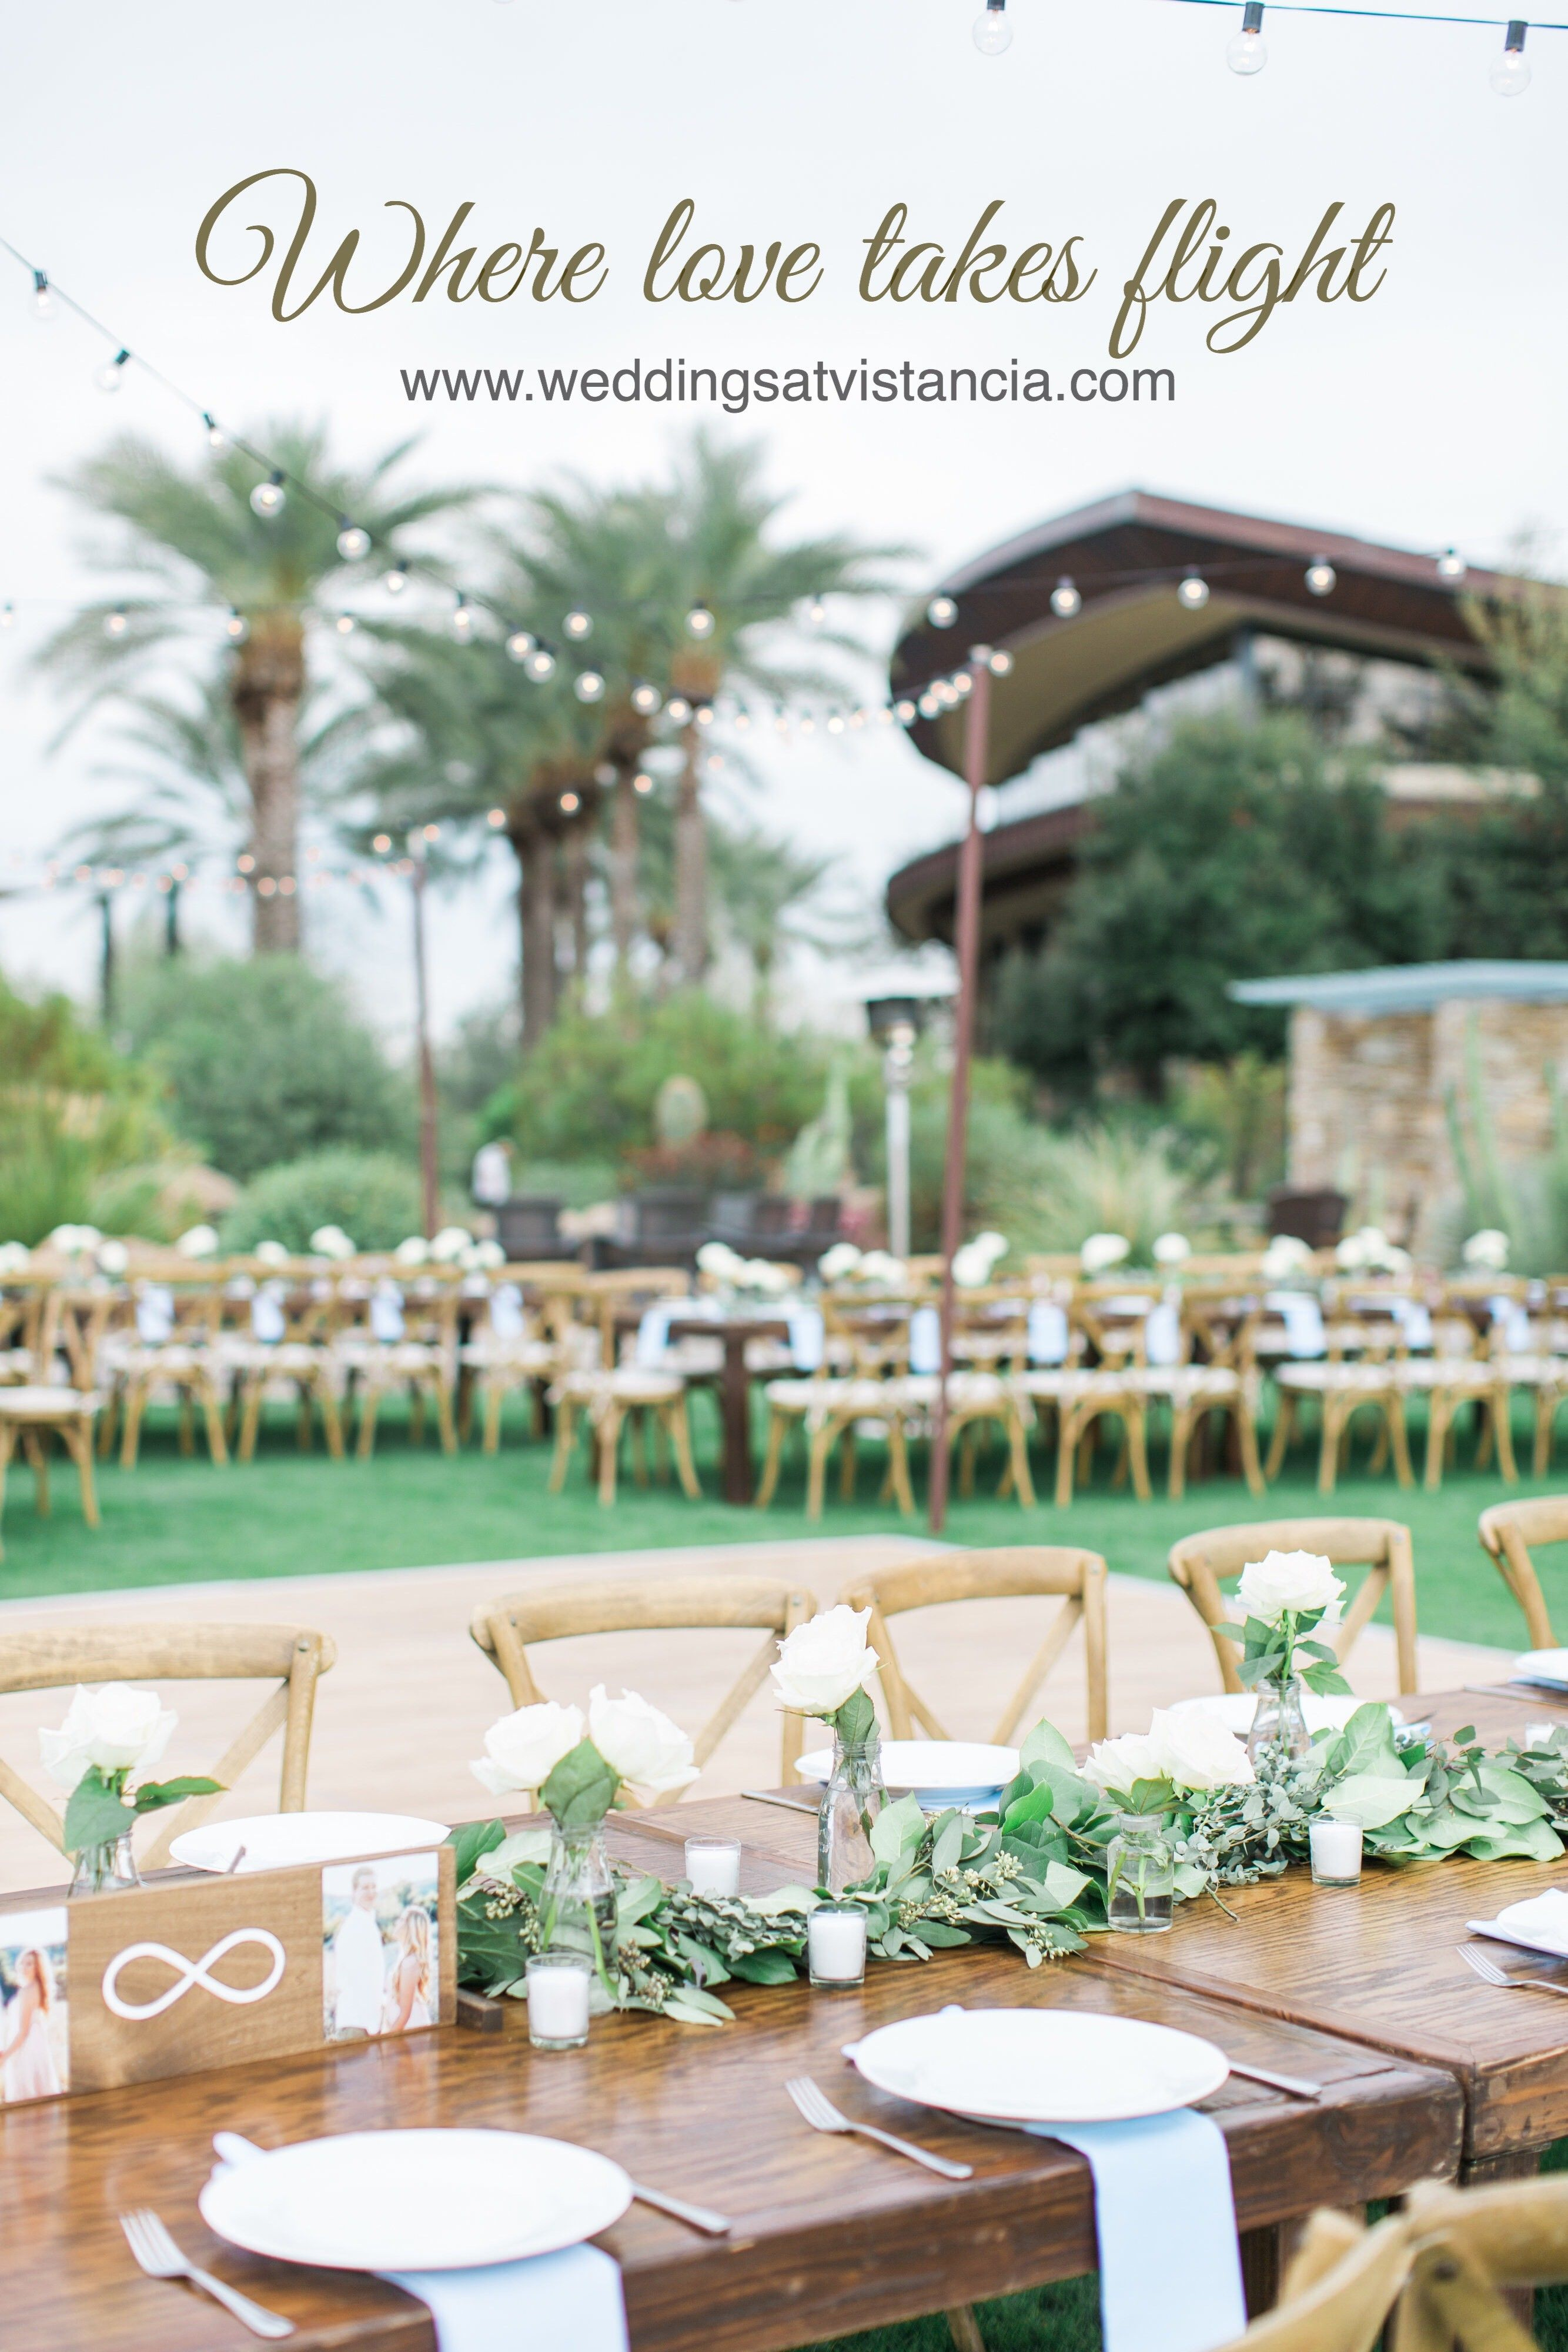 Award Winning Arizona Wedding Venue Offering A La Carte And All Inclusive Packages